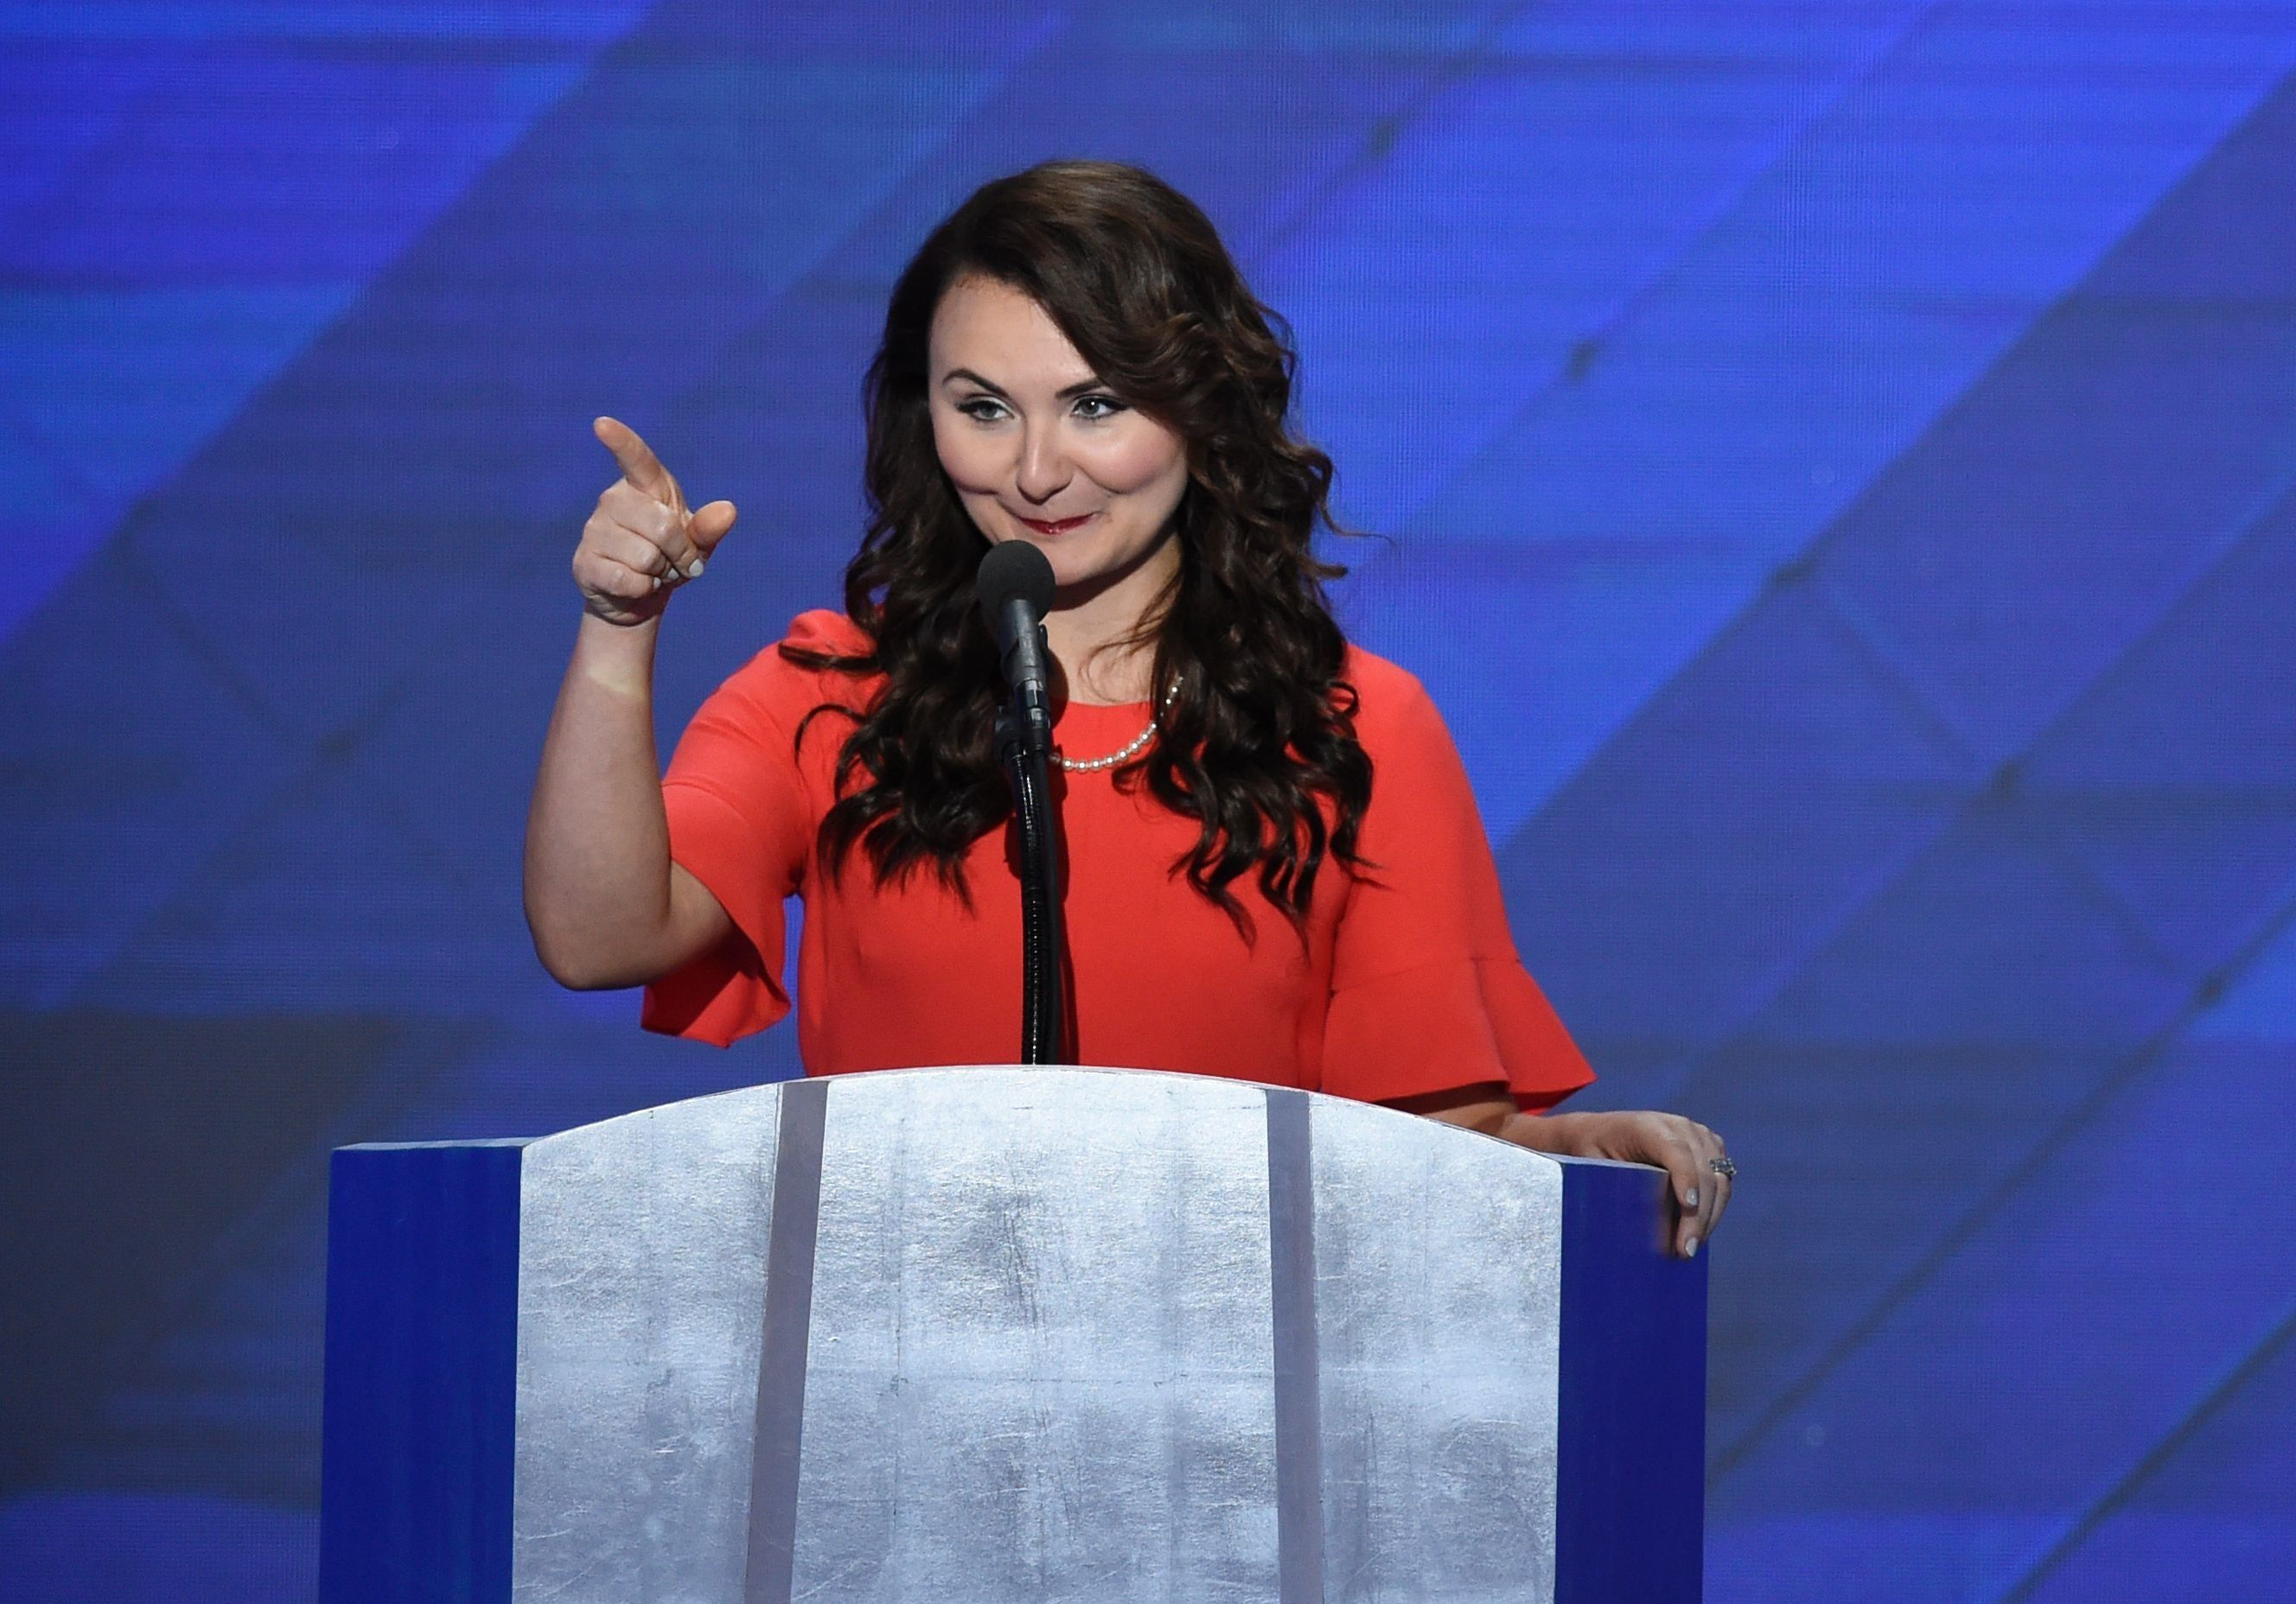 Jennifer Pierotti Lim, co-founder of Republican Women for Progress, speaking at the Democratic National Convention in 20